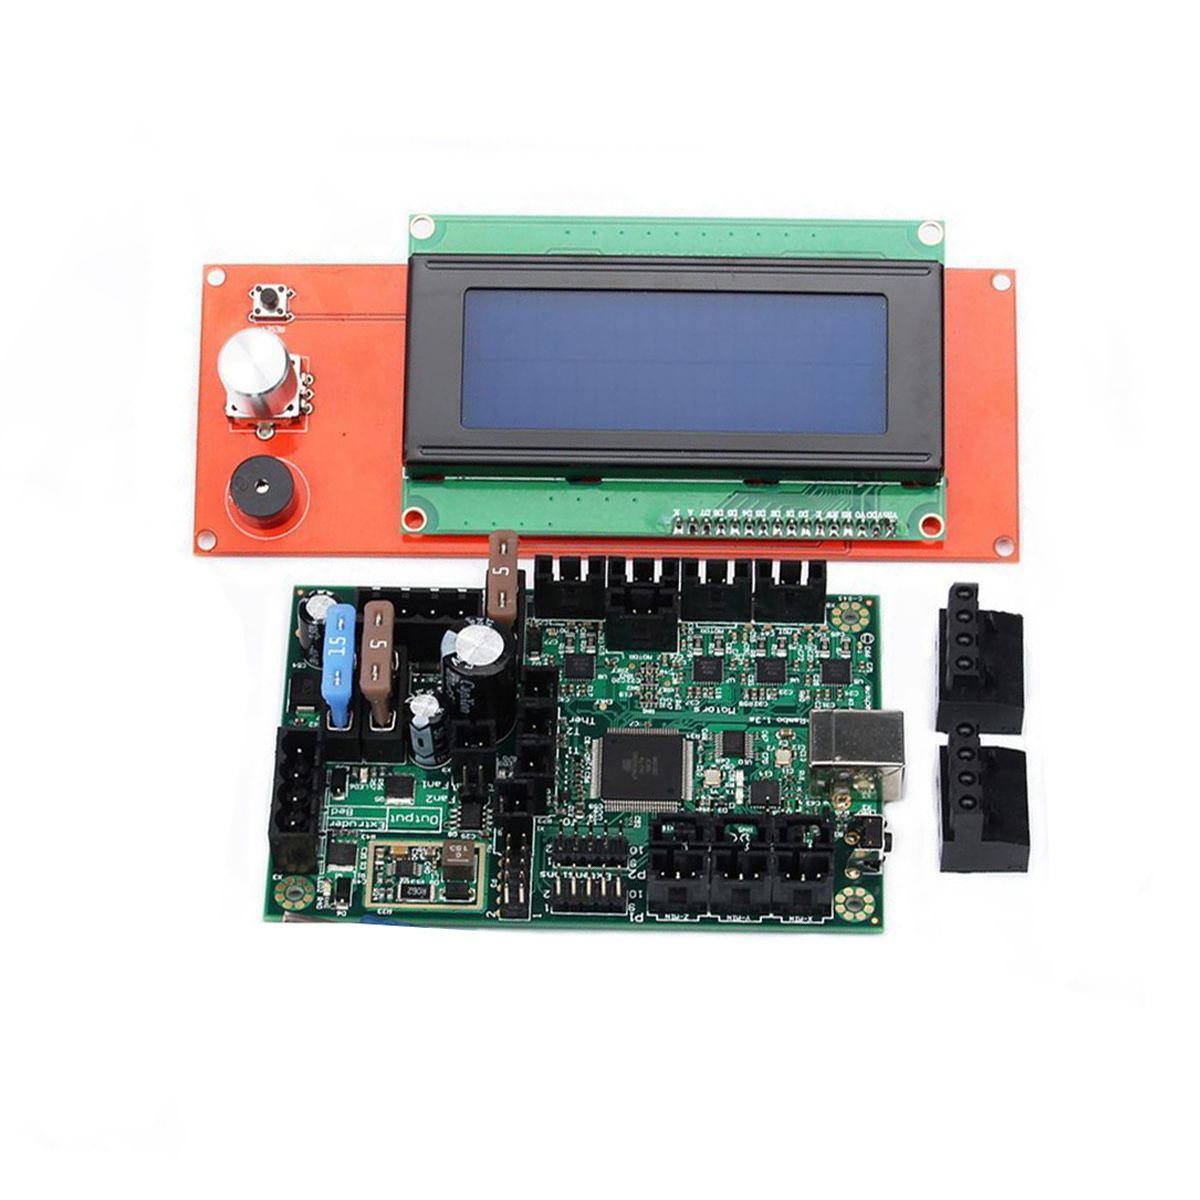 1PC Durable Mini-Rambo 1.3 Control PCB Board and LCD Screen Kit 3D Printing Part